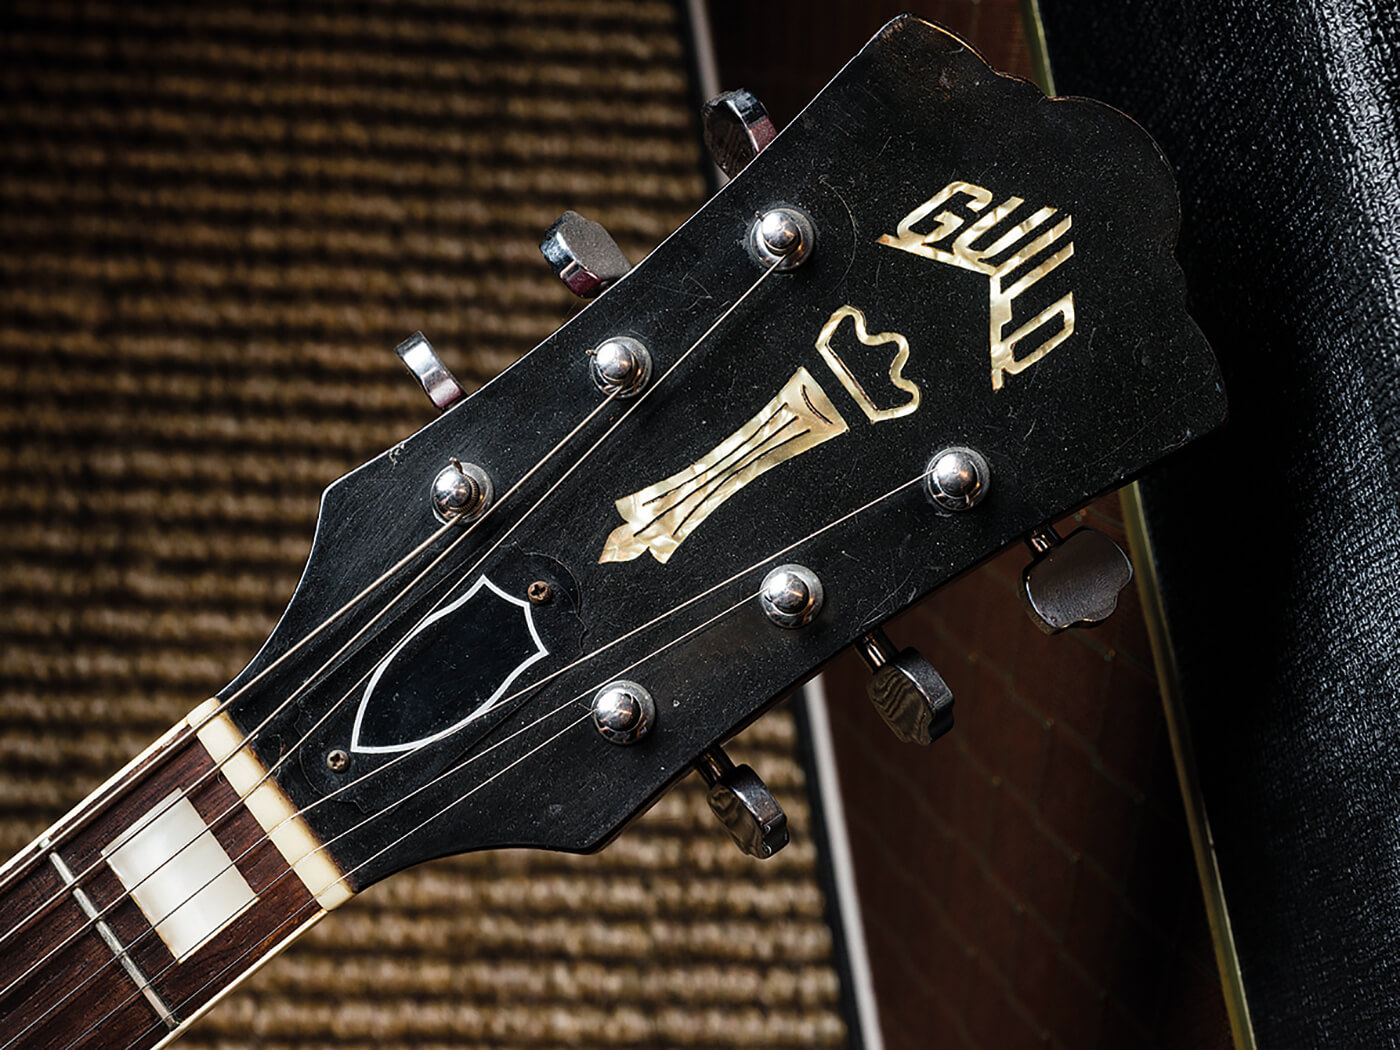 Guild S100 (Headstock)